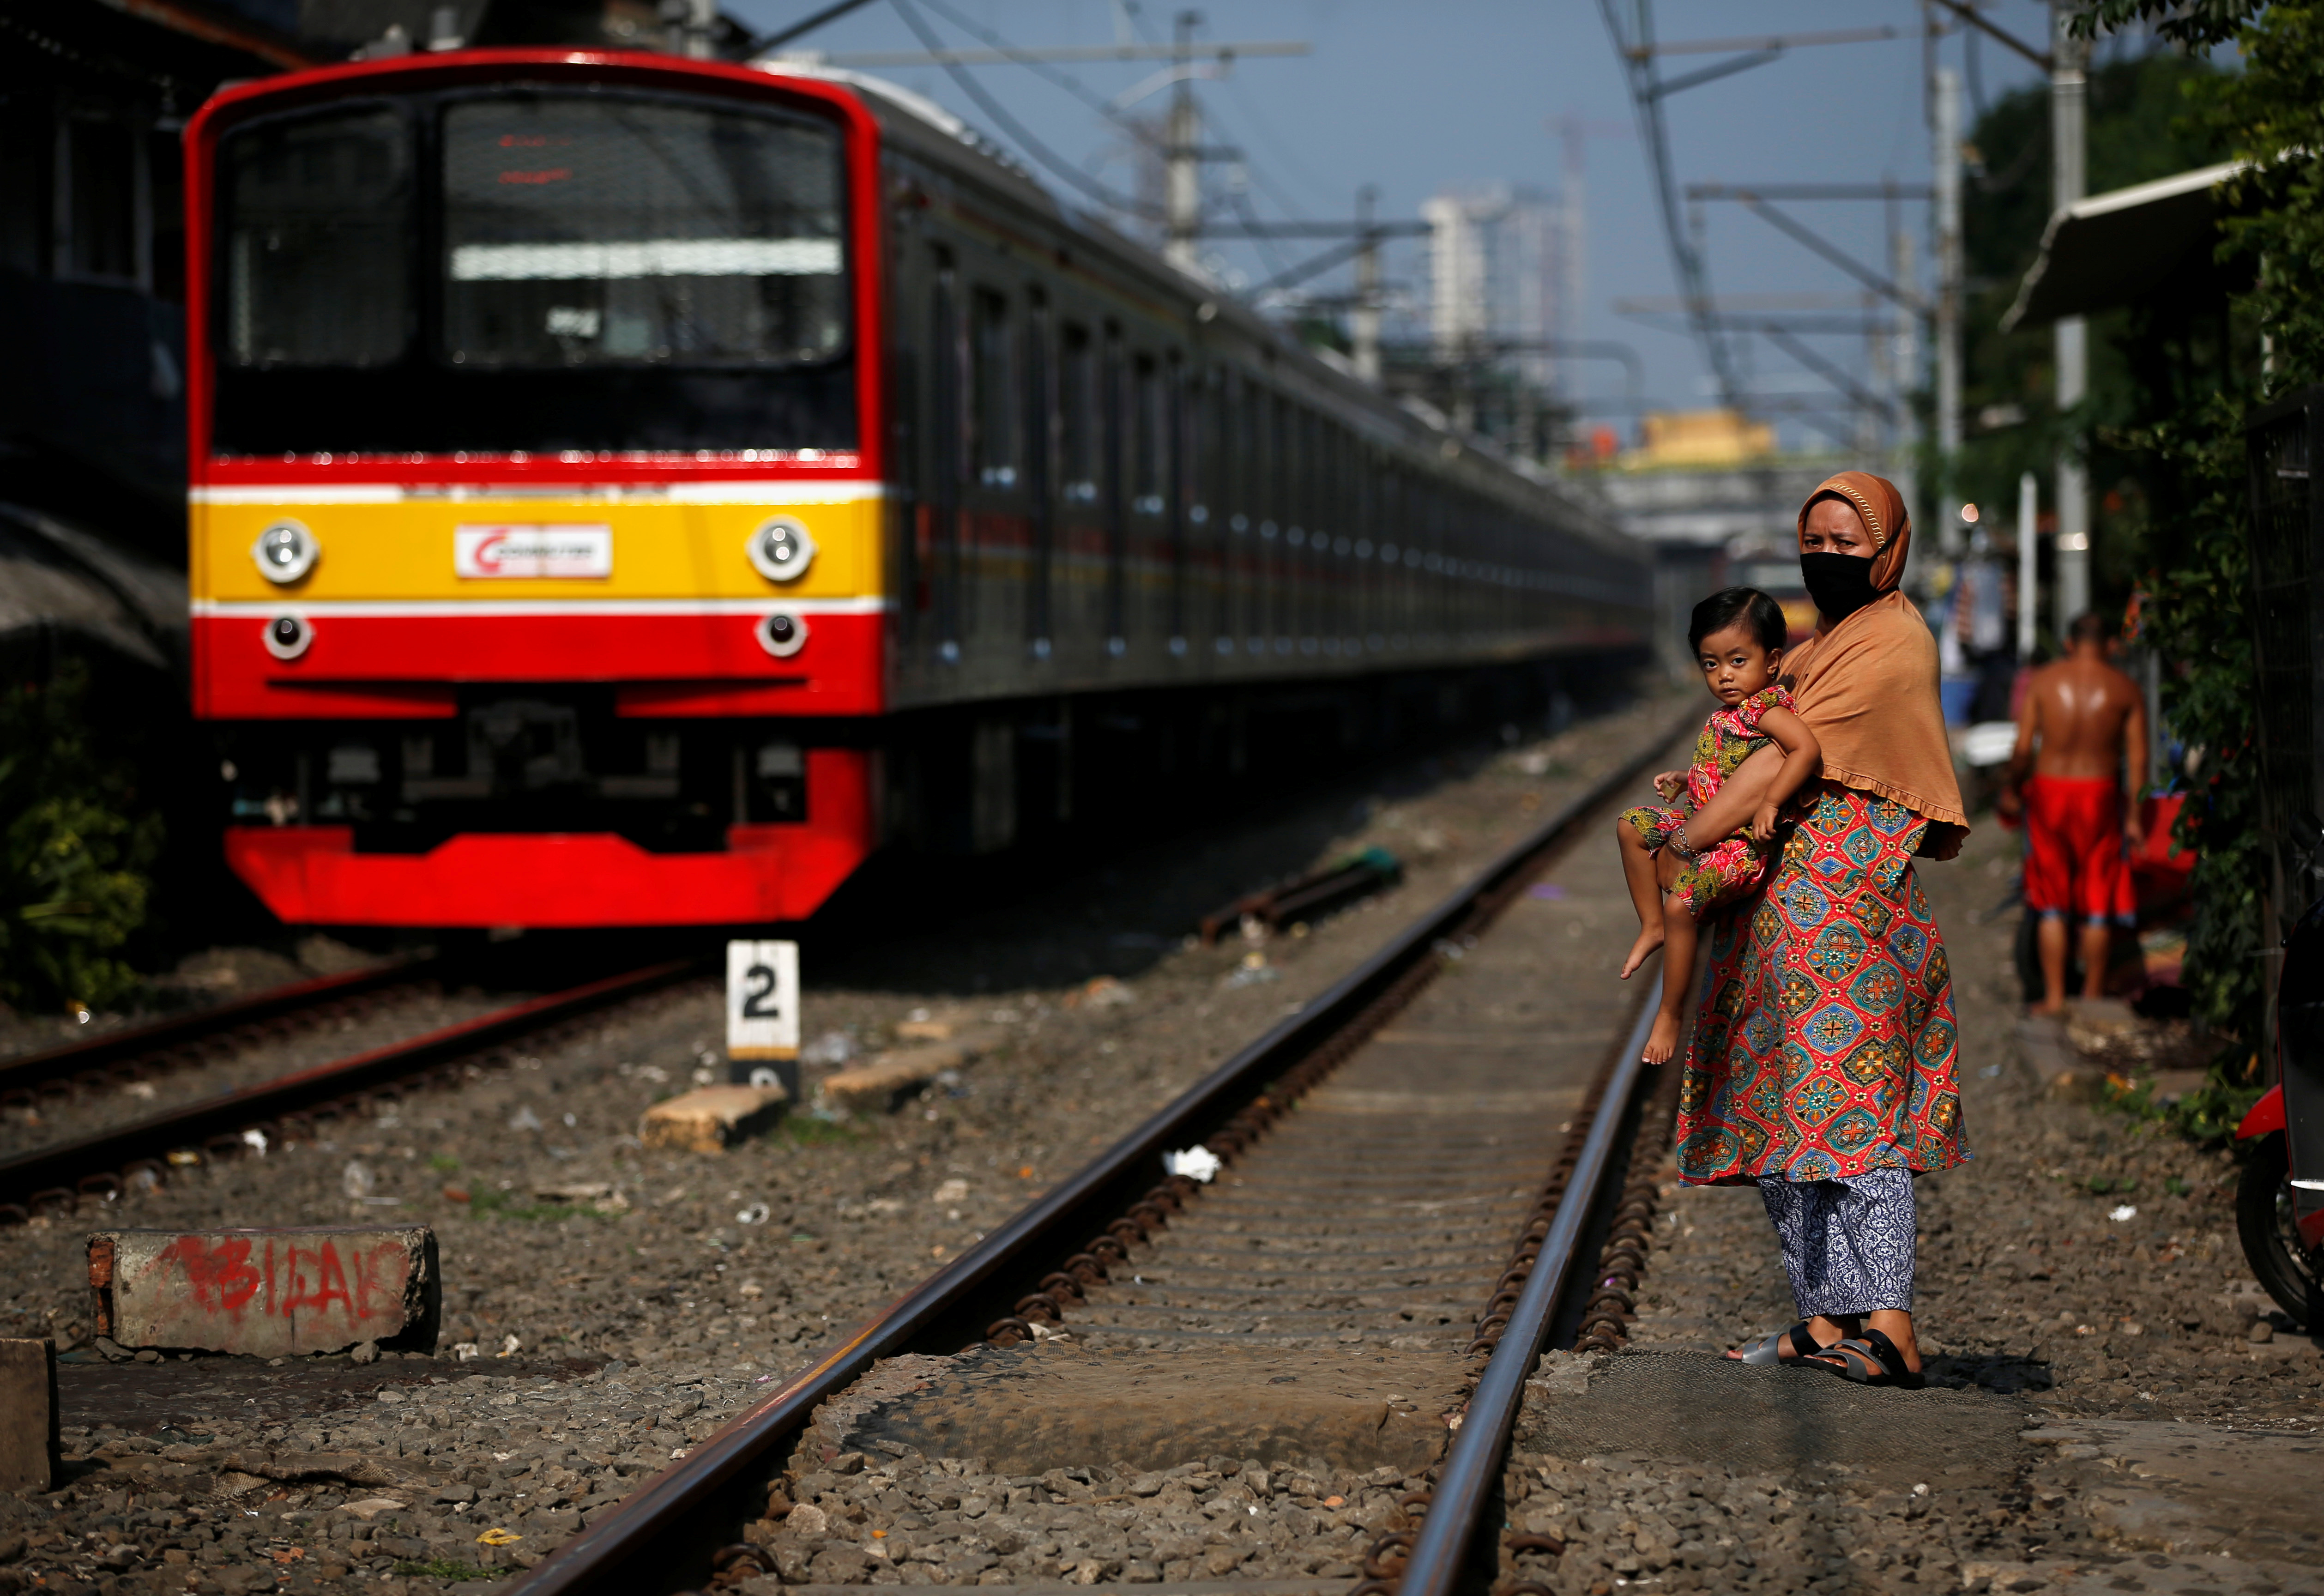 A train passes next to a woman wearing a face mask and a child along rail tracks, during the large-scale social restrictions to prevent the spread of the CCP virus in Jakarta, Indonesia, on April 12, 2020.